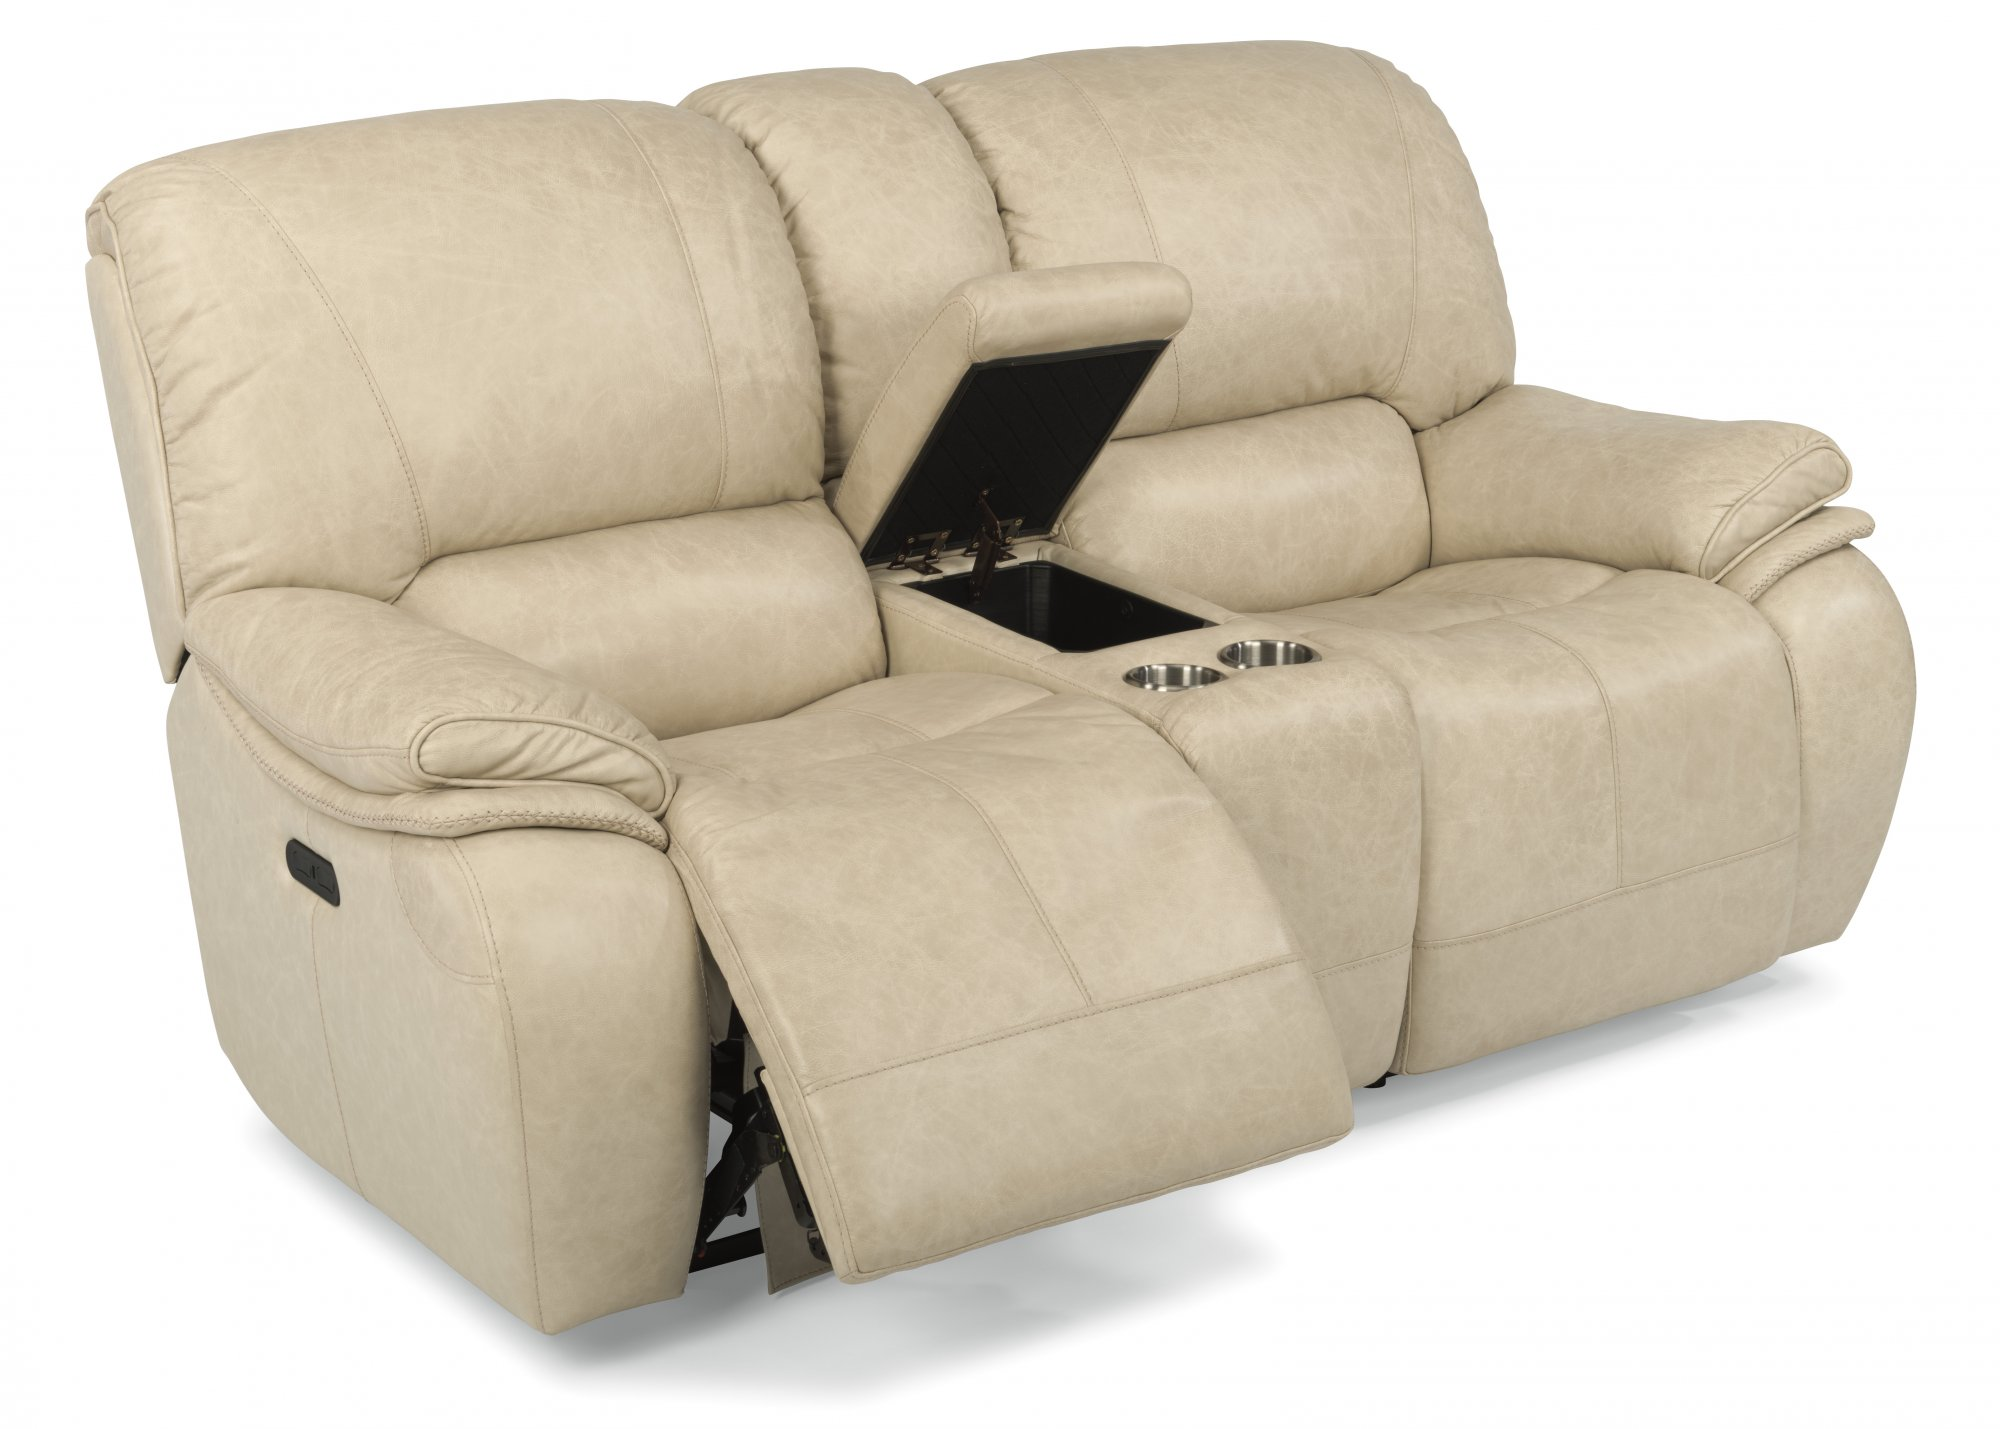 sofas and loveseats  reclining sofas and sleepers  flexsteel - leather power reclining loveseat with console and power headrests